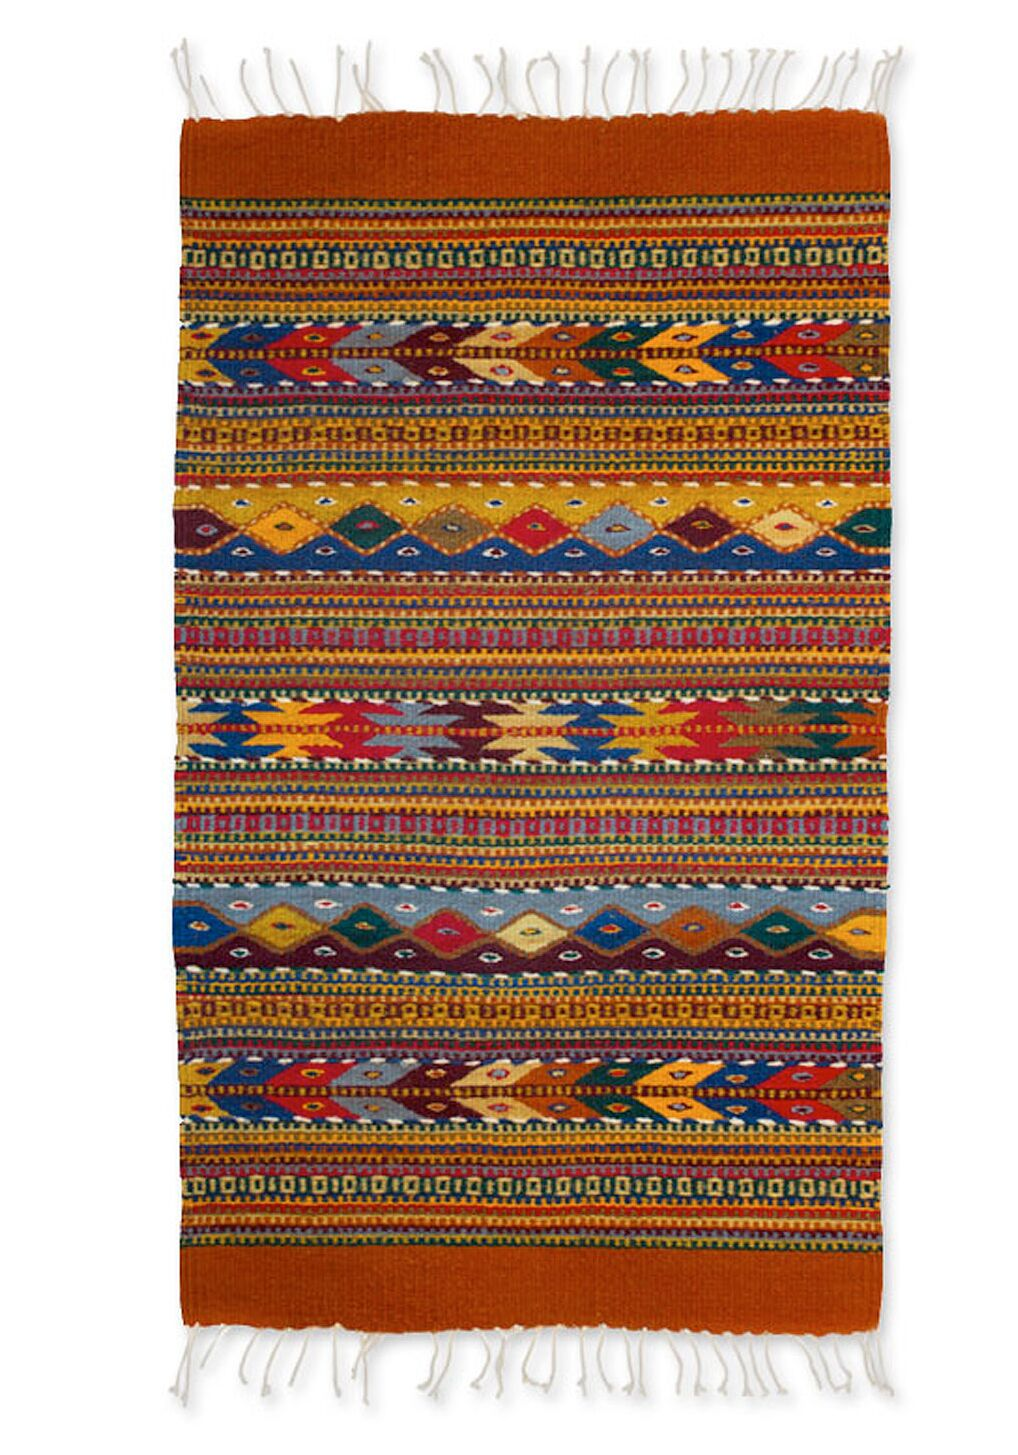 Weare Geometric Earth Tone Expertly Hand Woven Mexican Wool Home Decor Area Rug